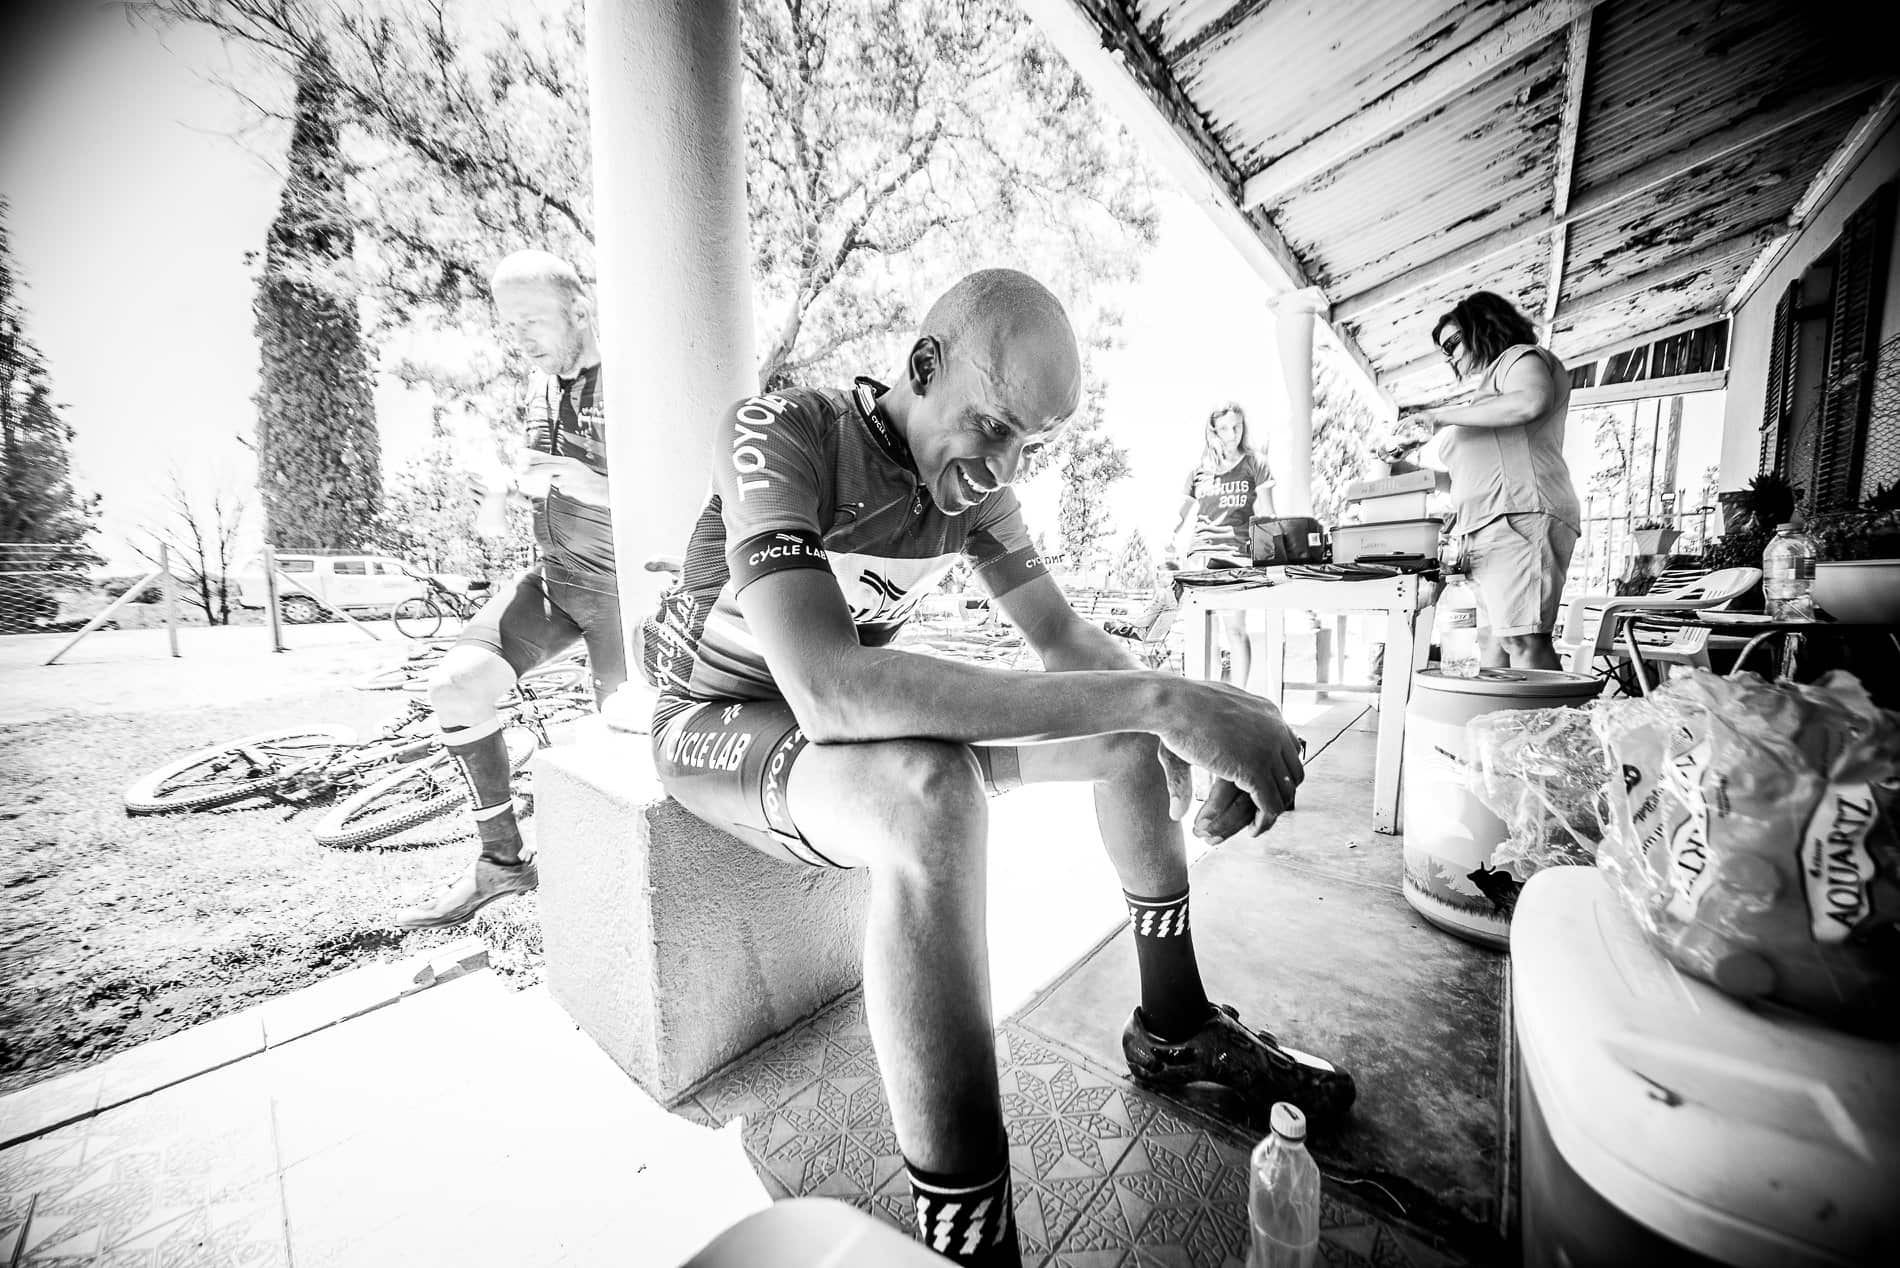 Munga-broken is an entire new level of stuffed; heat, sleep-deprivation and the constant why, why, why drain riders, sometimes beyond repair. Erik Vermeulen / The Munga 2019